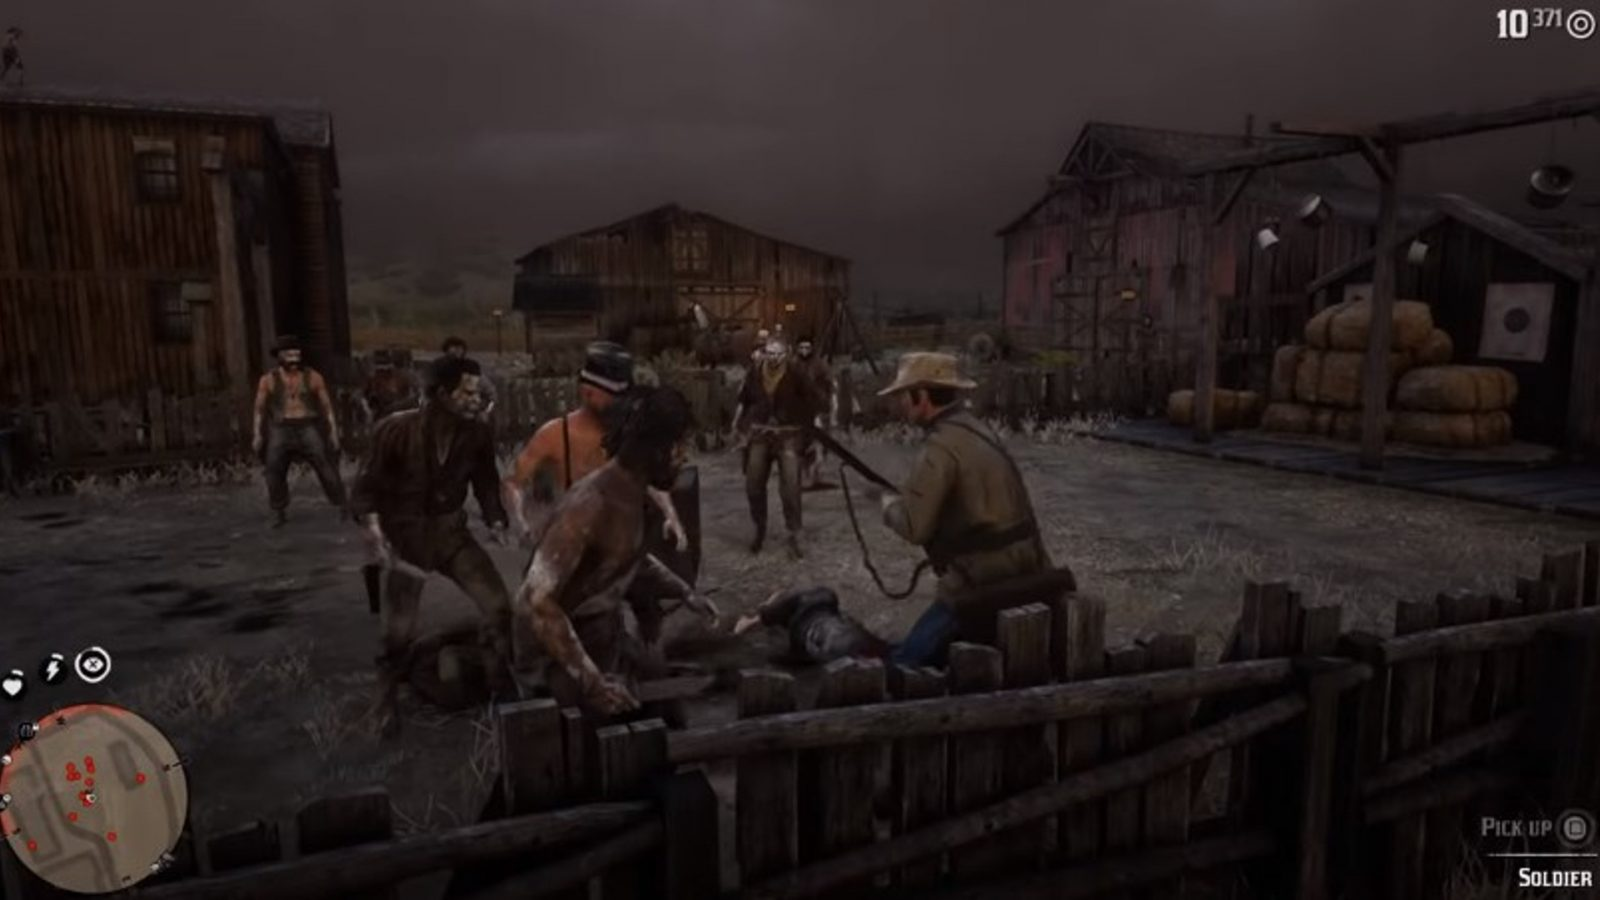 Zombies are coming to Red Dead Redemption 2 courtesy of this Undead Nightmare 2 mod